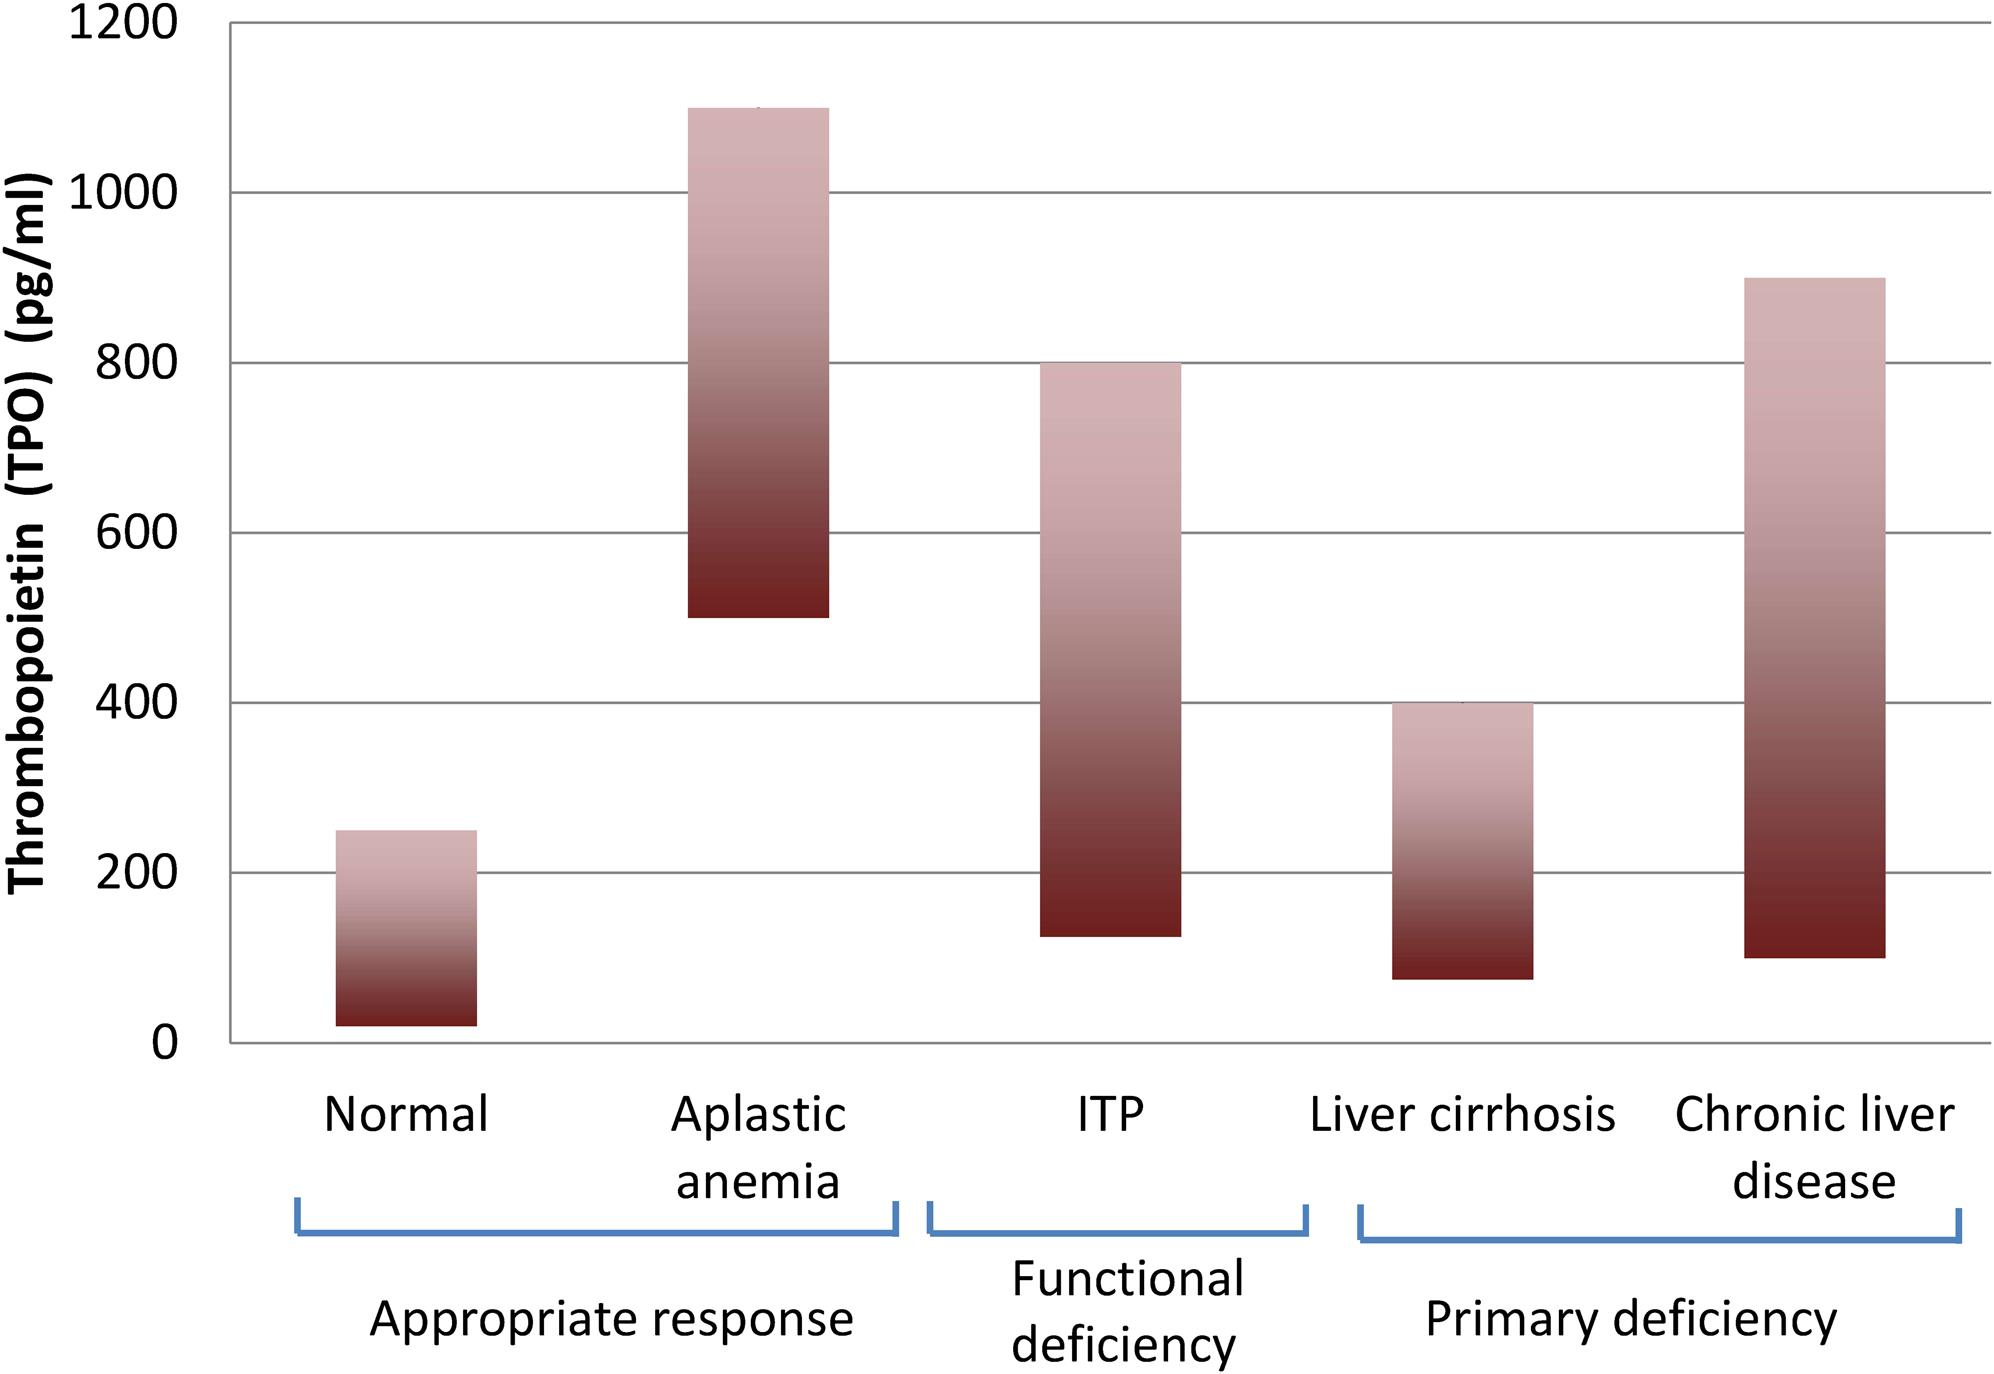 Mean ranges of thrombocytopenia levels in various disease states: aplastic anemia, idiopathic thrombocytopenia purpura (ITP), liver cirrhosis, and chronic liver disease.